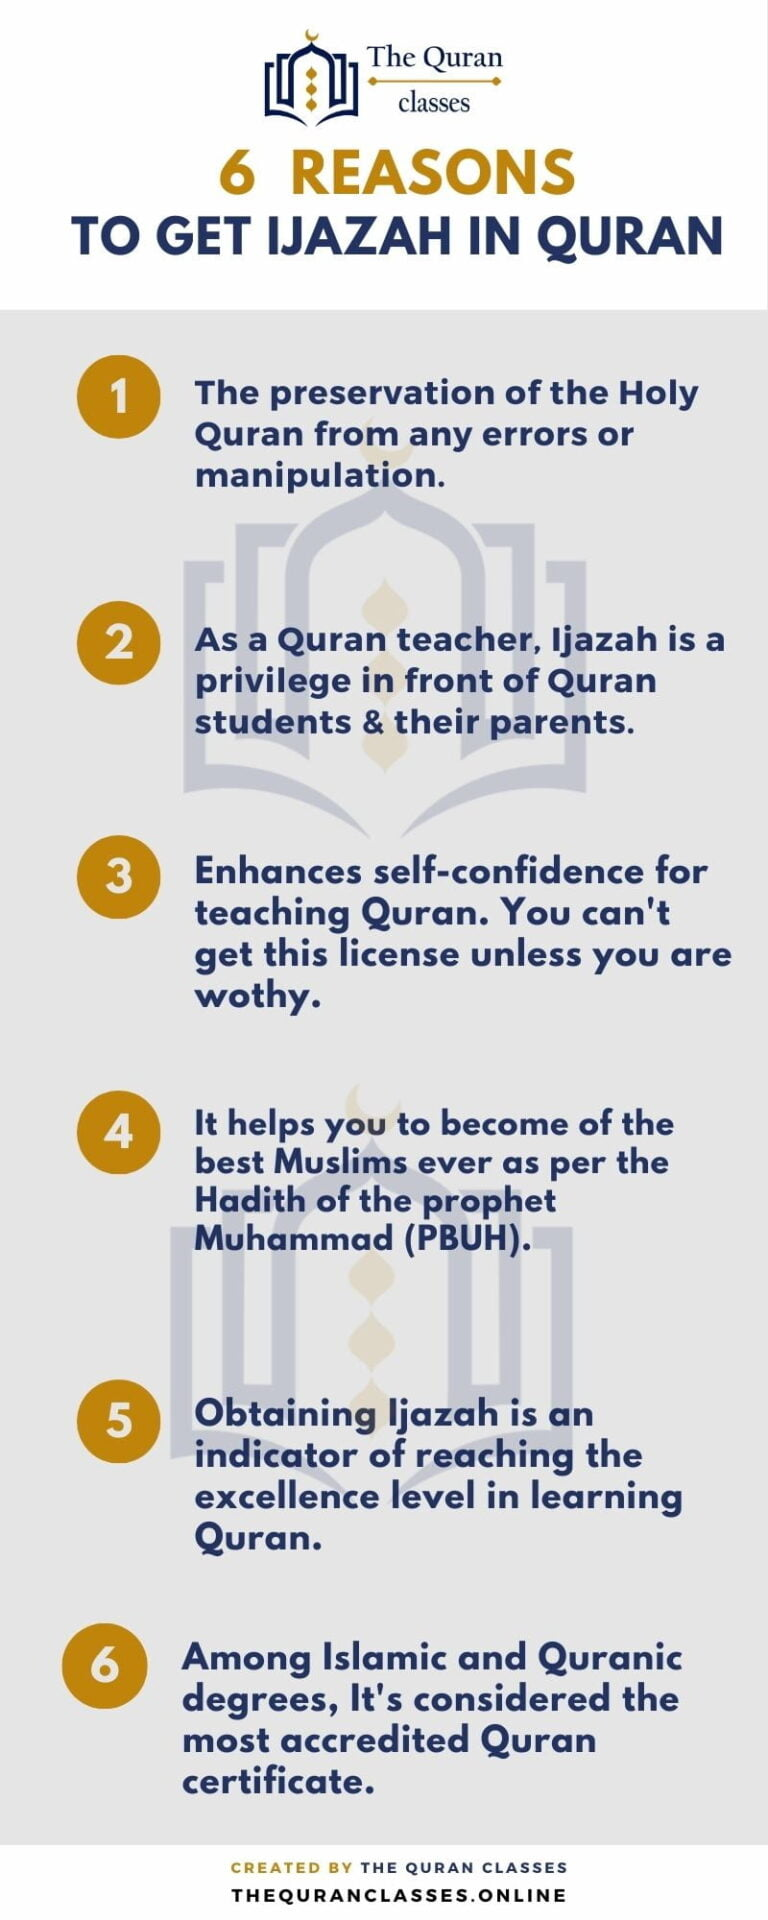 6 Reasons to Get Ijazah (infographic) - The Quran Classes